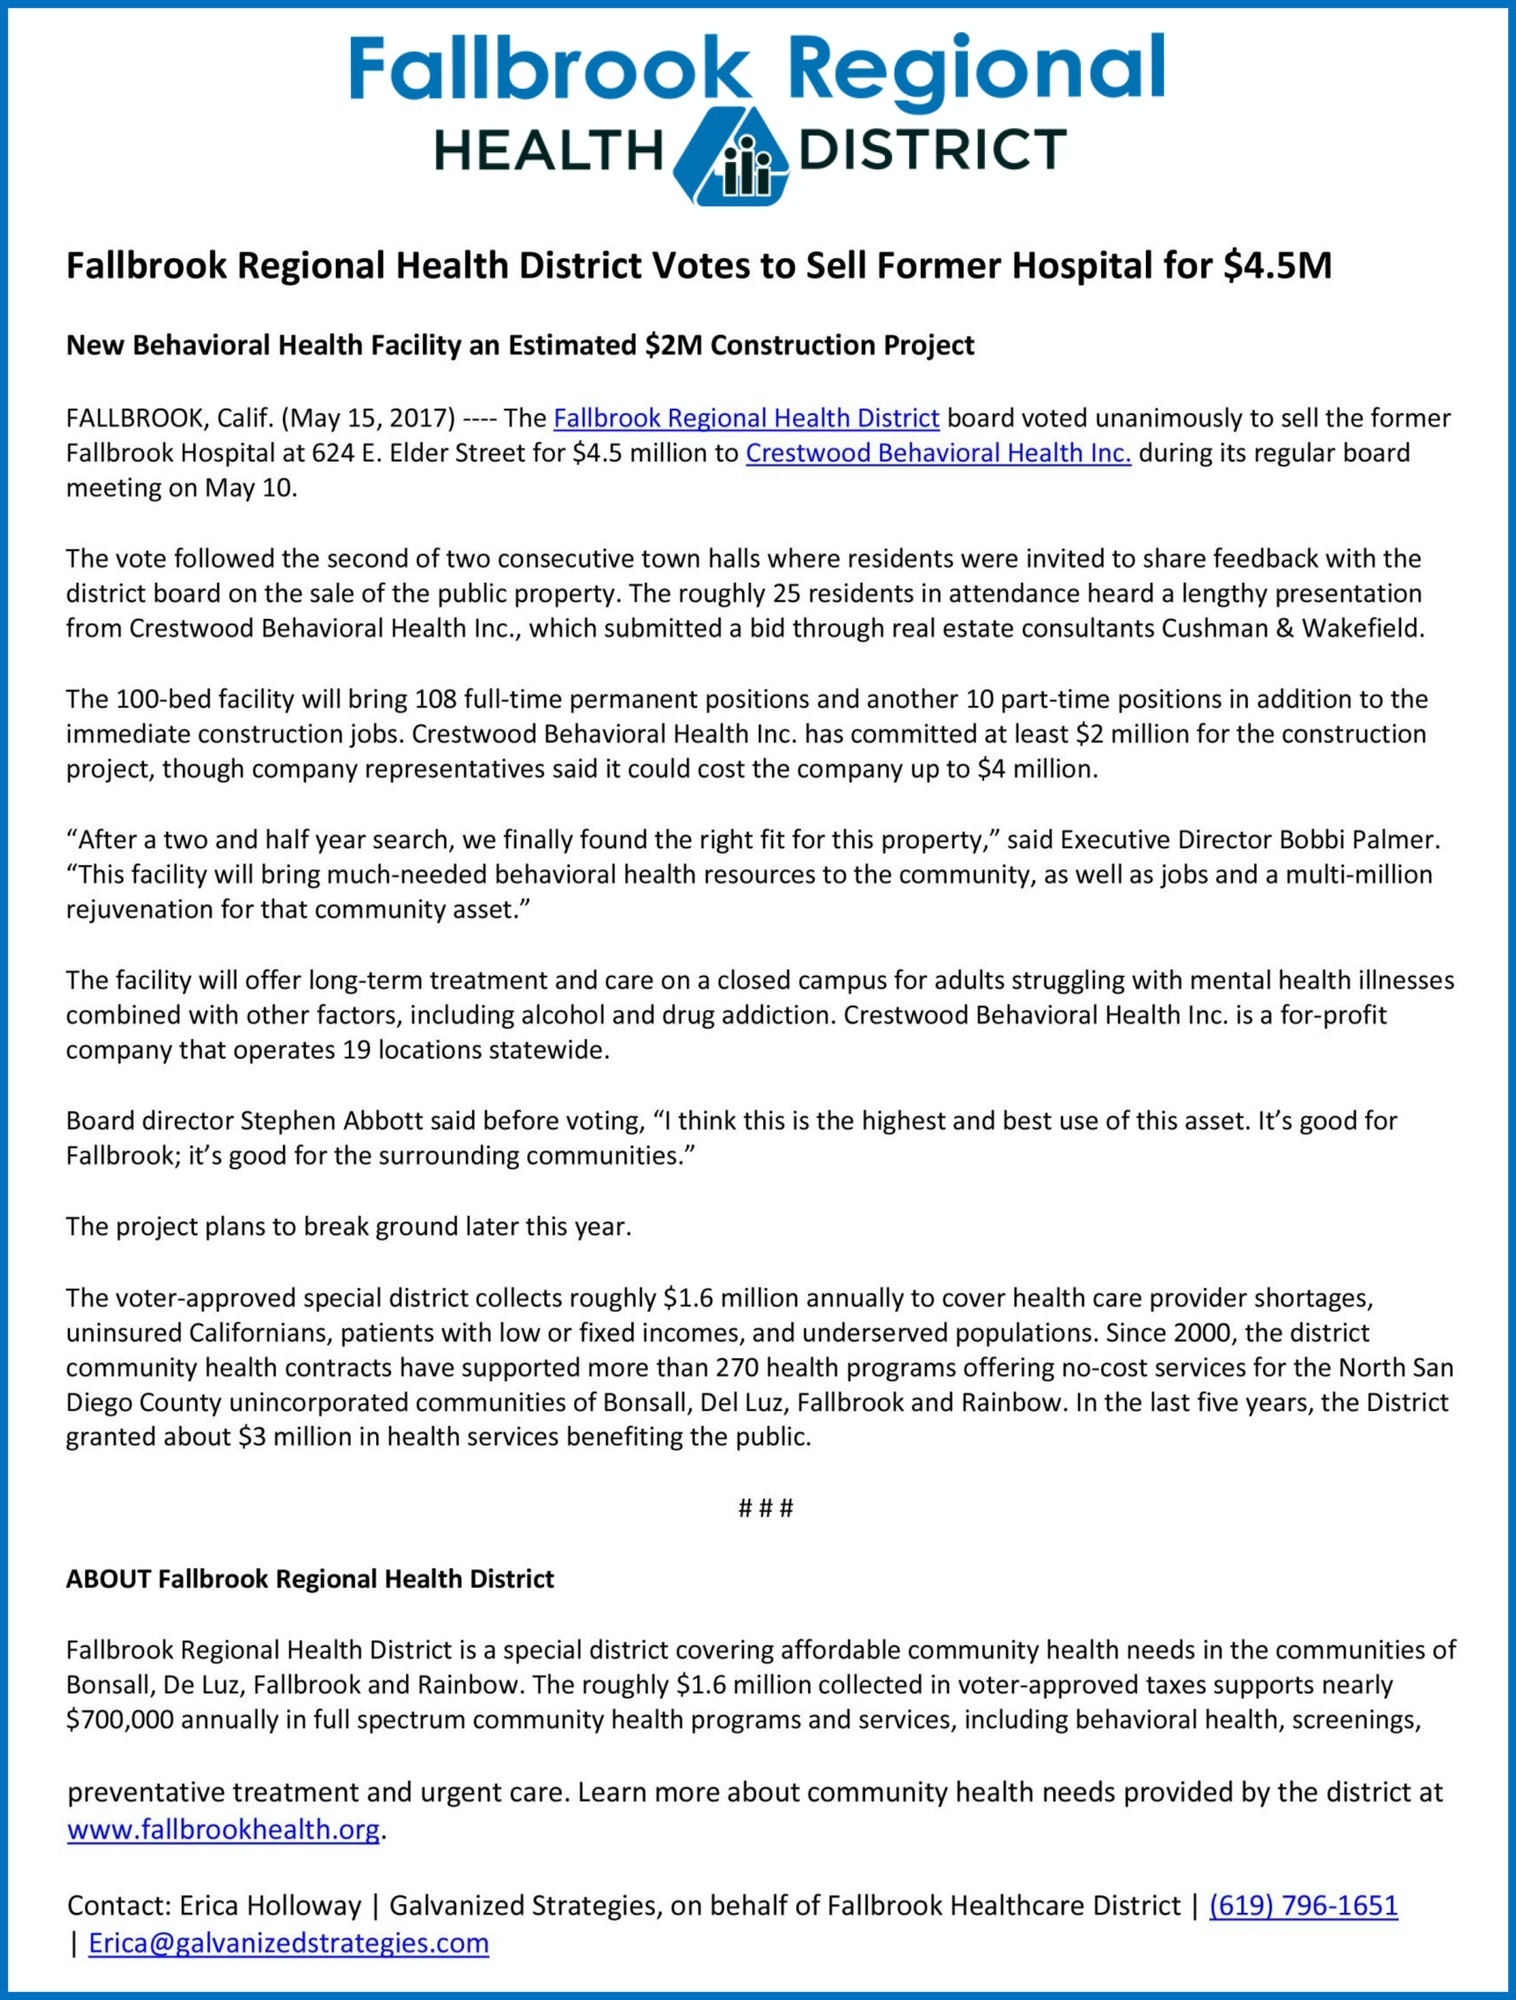 "Fallbrook Regional Health District Votes to Sell Former Hospital for $4.5M New Behavioral Health Facility an Estimated $2M Construction Project FALLBROOK, Calif. (May 15, 2017) ---- The Fallbrook Regional Health District board voted unanimously to sell the former Fallbrook Hospital at 624 E. Elder Street for $4.5 million to Crestwood Behavioral Health Inc. during its regular board meeting on May 10. The vote followed the second of two consecutive town halls where residents were invited to share feedback with the district board on the sale of the public property. The roughly 25 residents in attendance heard a lengthy presentation from Crestwood Behavioral Health Inc., which submitted a bid through real estate consultants Cushman & Wakefield. The 100-bed facility will bring 108 full-time permanent positions and another 10 part-time positions in addition to the immediate construction jobs. Crestwood Behavioral Health Inc. has committed at least $2 million for the construction project, though company representatives said it could cost the company up to $4 million. ""After a two and half year search, we finally found the right fit for this property,"" said Executive Director Bobbi Palmer. ""This facility will bring much-needed behavioral health resources to the community, as well as jobs and a multi-million rejuvenation for that community asset."" The facility will offer long-term treatment and care on a closed campus for adults struggling with mental health illnesses combined with other factors, including alcohol and drug addiction. Crestwood Behavioral Health Inc. is a for-profit company that operates 19 locations statewide. Board director Stephen Abbott said before voting, ""I think this is the highest and best use of this asset. It's good for Fallbrook; it's good for the surrounding communities."" The project plans to break ground later this year. The voter-approved special district collects roughly $1.6 million annually to cover health care provider shortages, uninsured Californians, patients with low or fixed incomes, and underserved populations. Since 2000, the district community health contracts have supported more than 270 health programs offering no-cost services for the North San Diego County unincorporated communities of Bonsall, Del Luz, Fallbrook and Rainbow. In the last five years, the District granted about $3 million in health services benefiting the public."